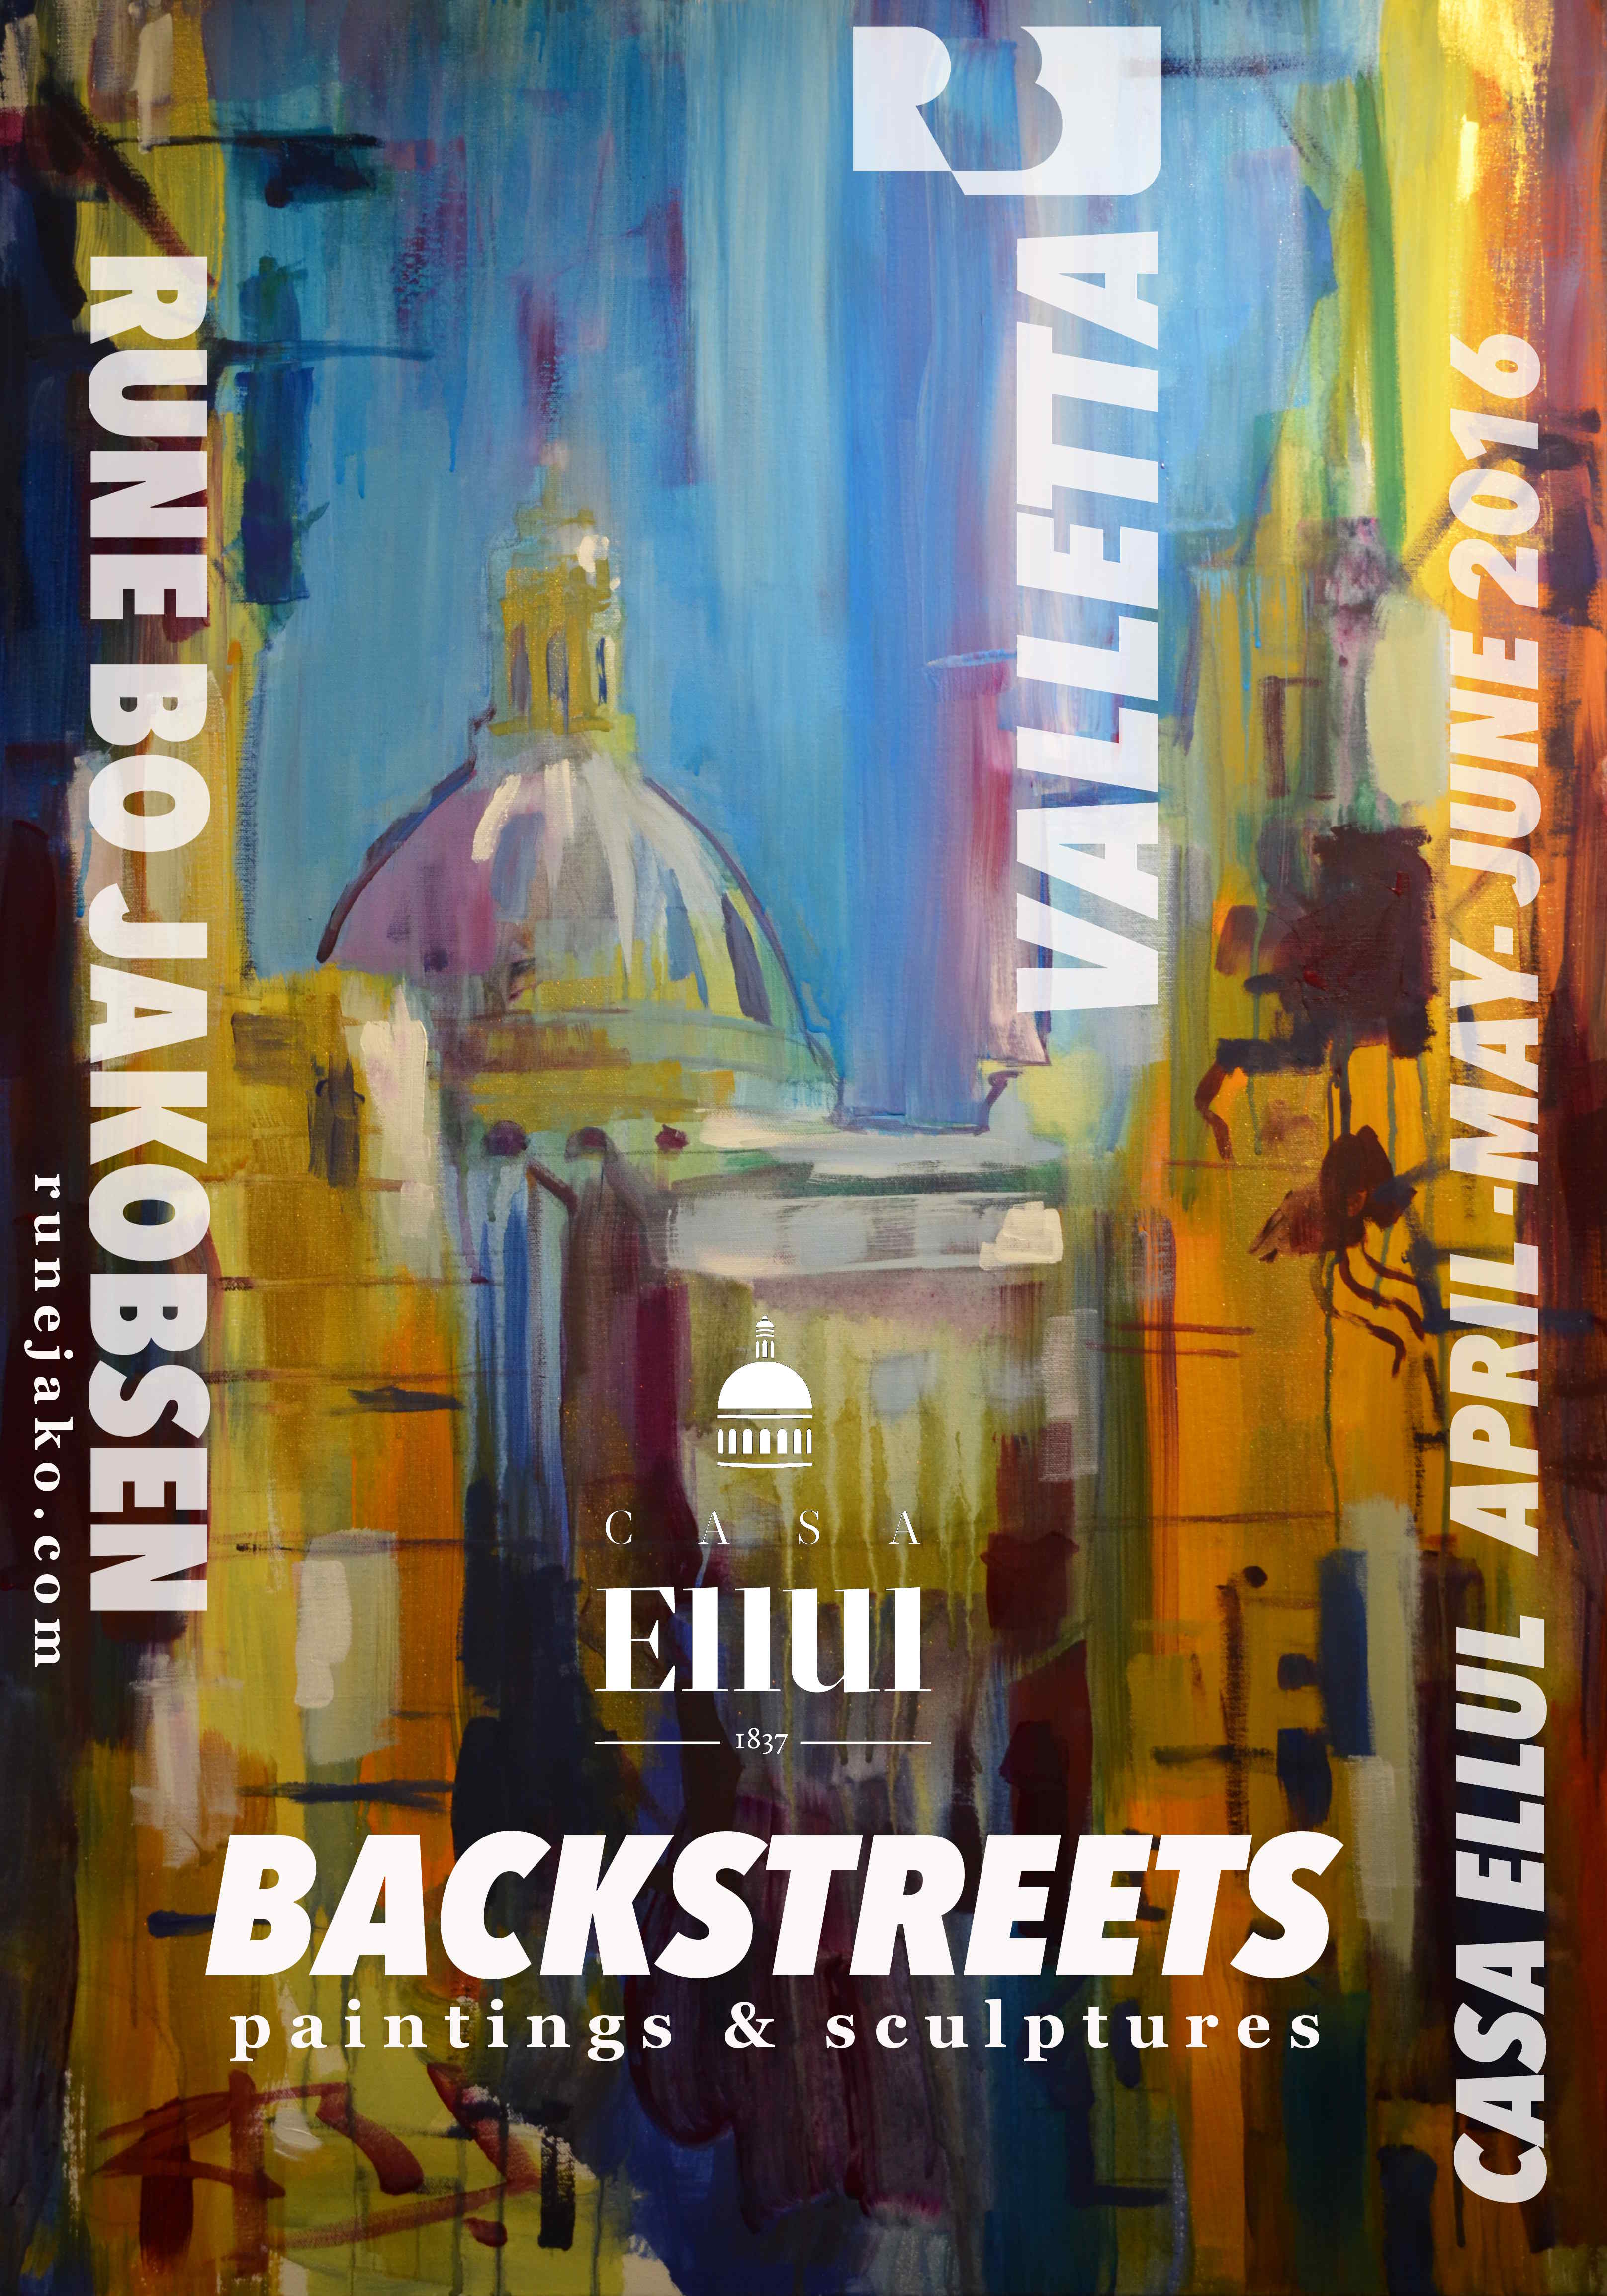 BACKSTREETS RBJ POSTER 2016s